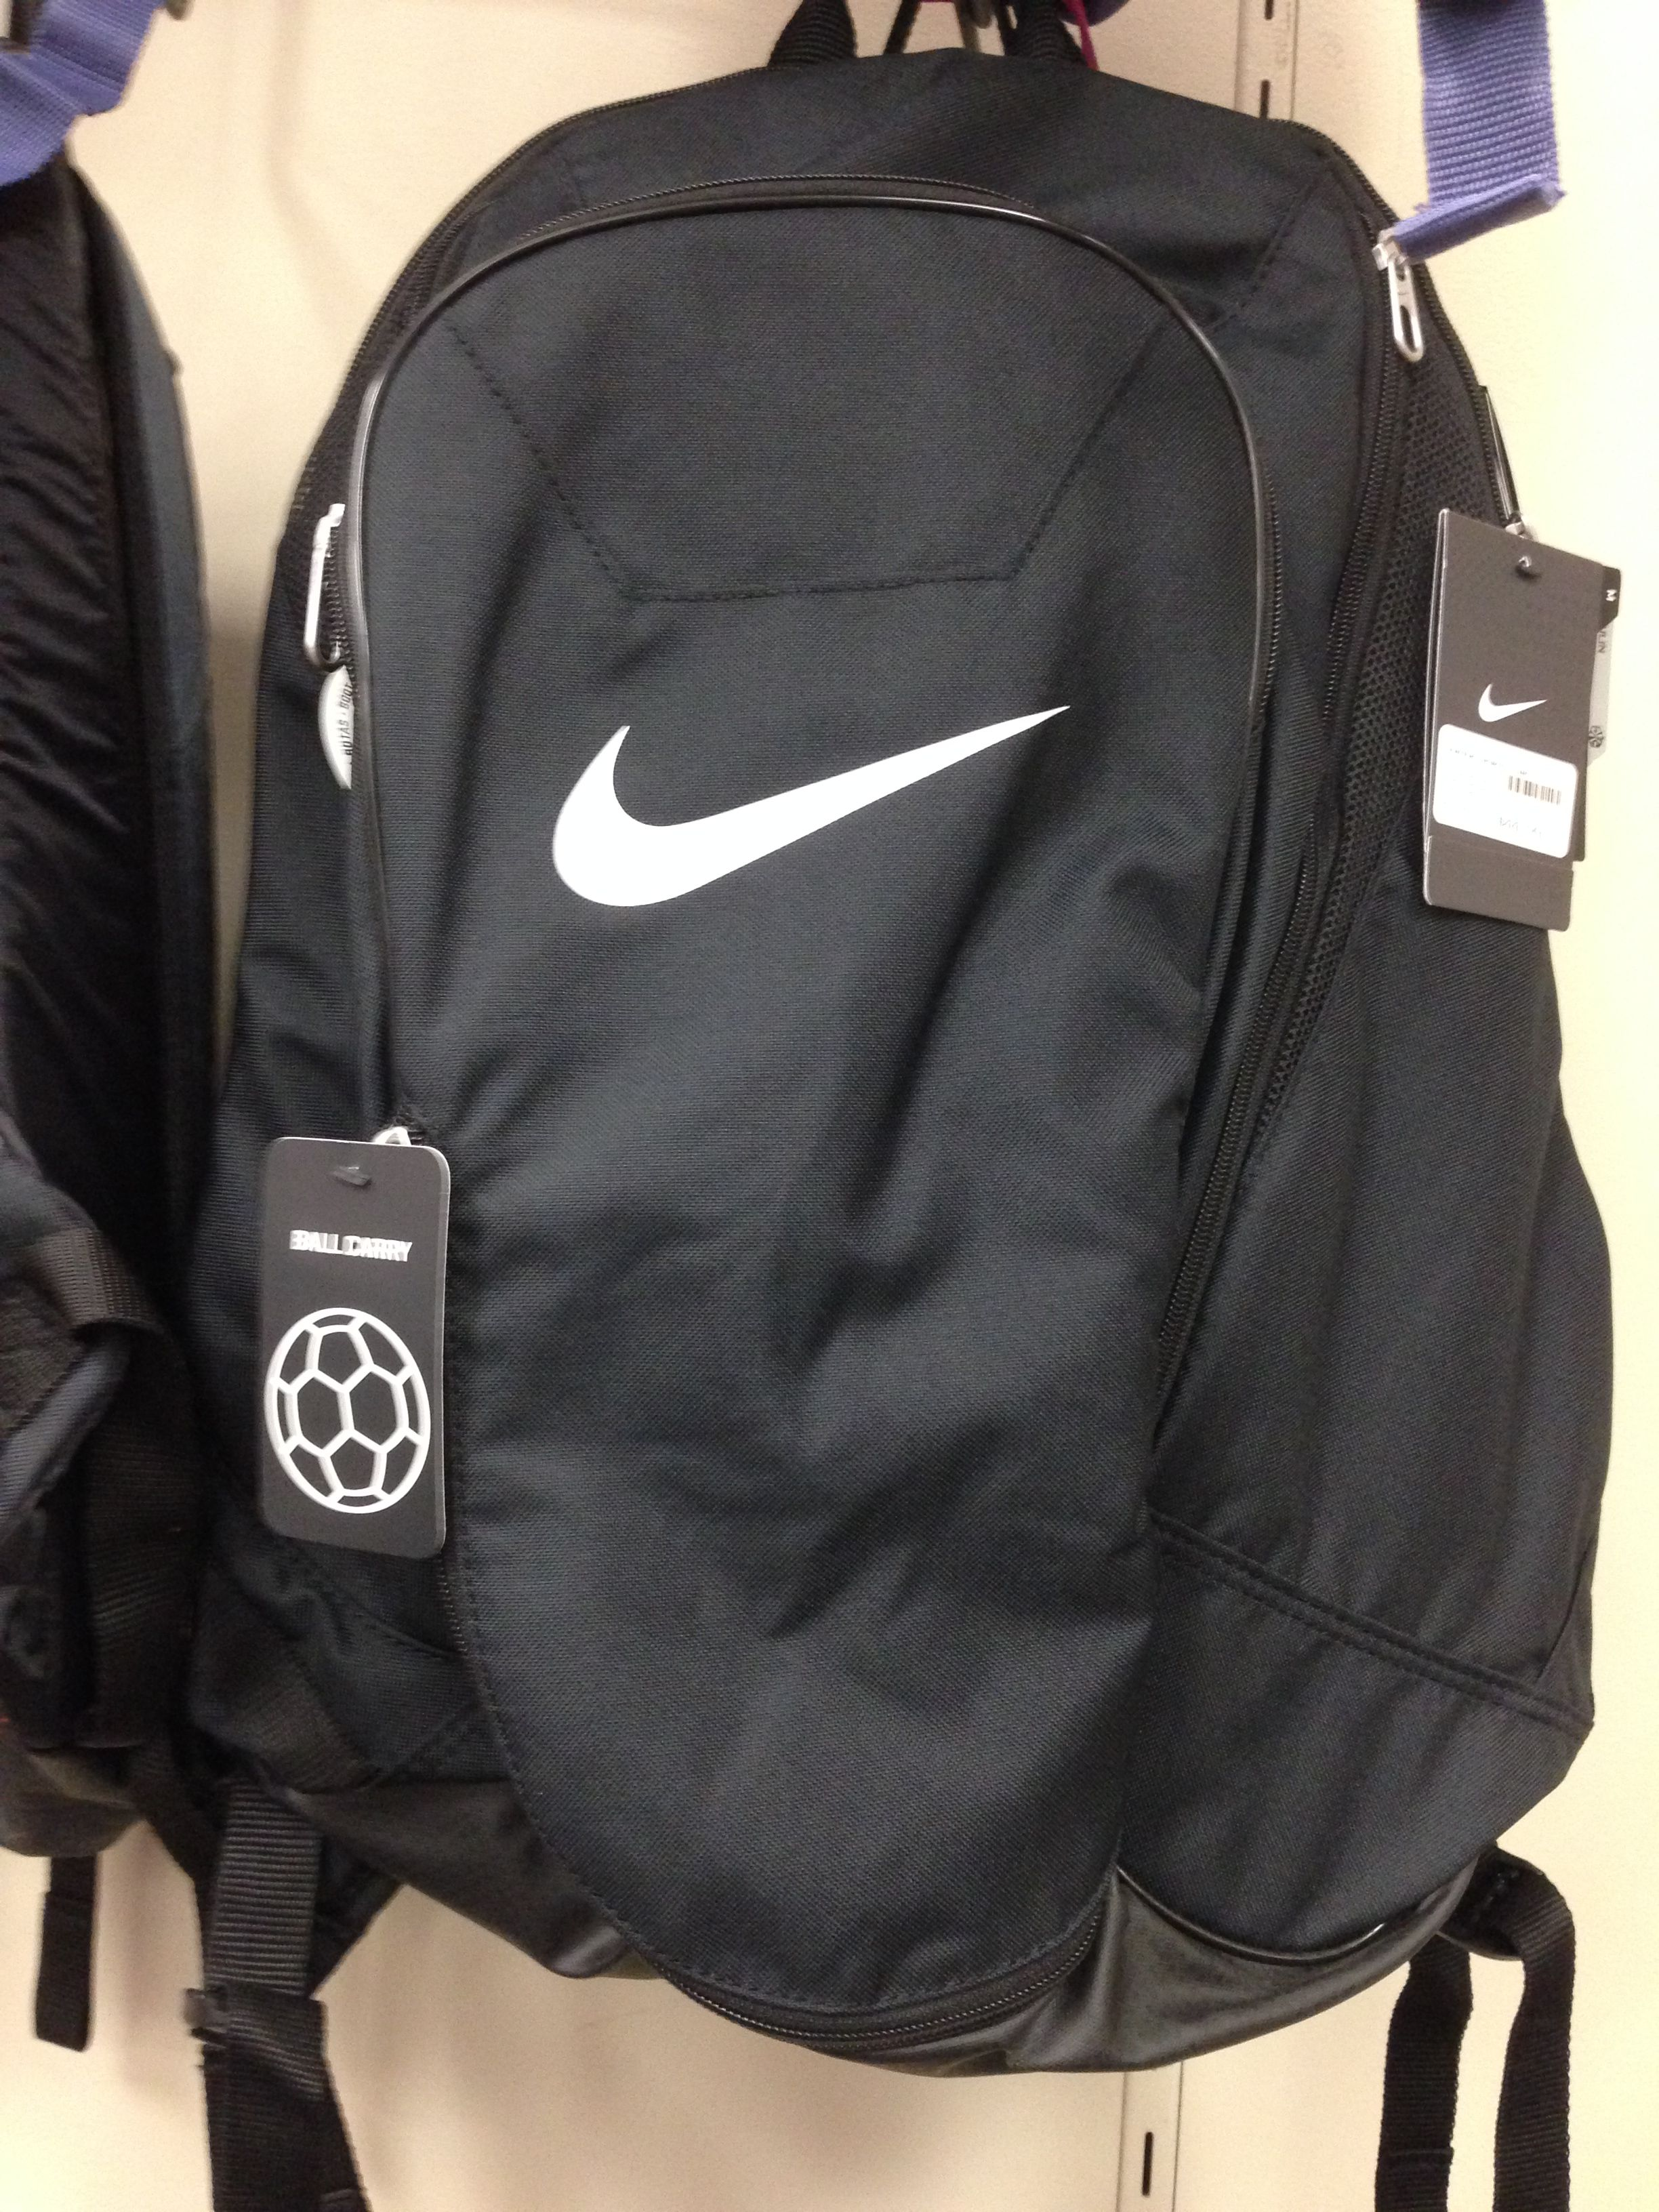 954564b1e9 Black Nike Soccer Backpack  Backpack with Ball Carry Compartment ...